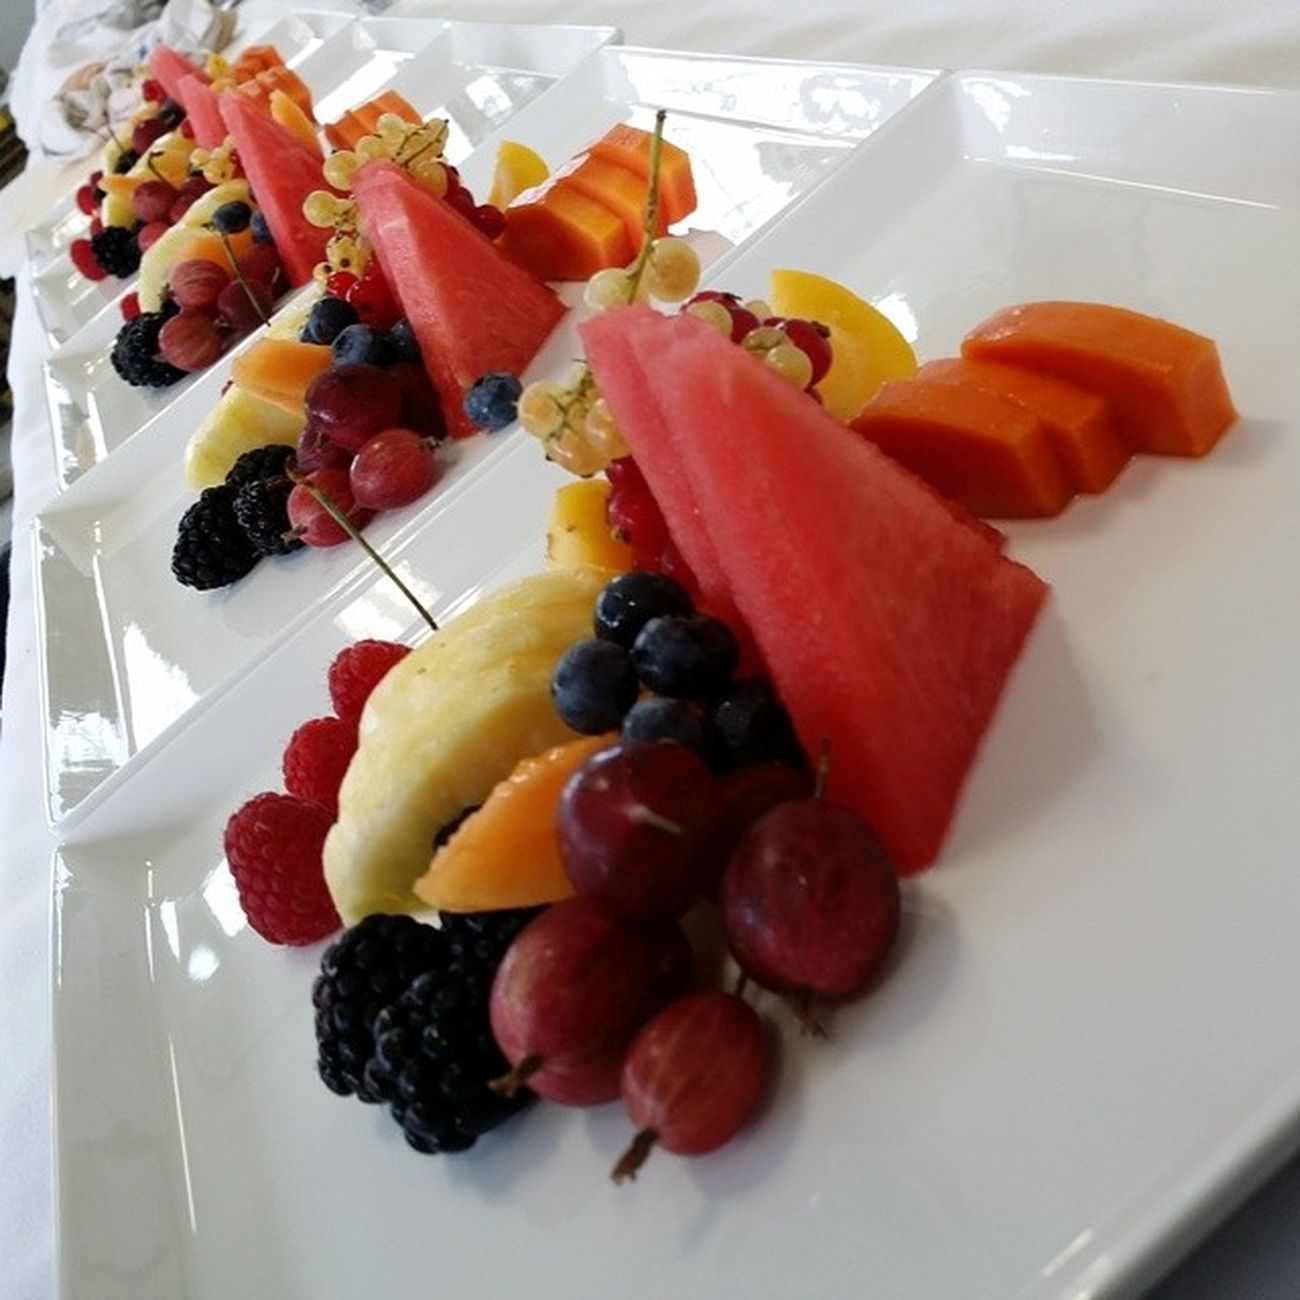 Fresh Fruit Bridgehampton Notabowlofberries Luxury Summer fresh fruit with @ashferbiju